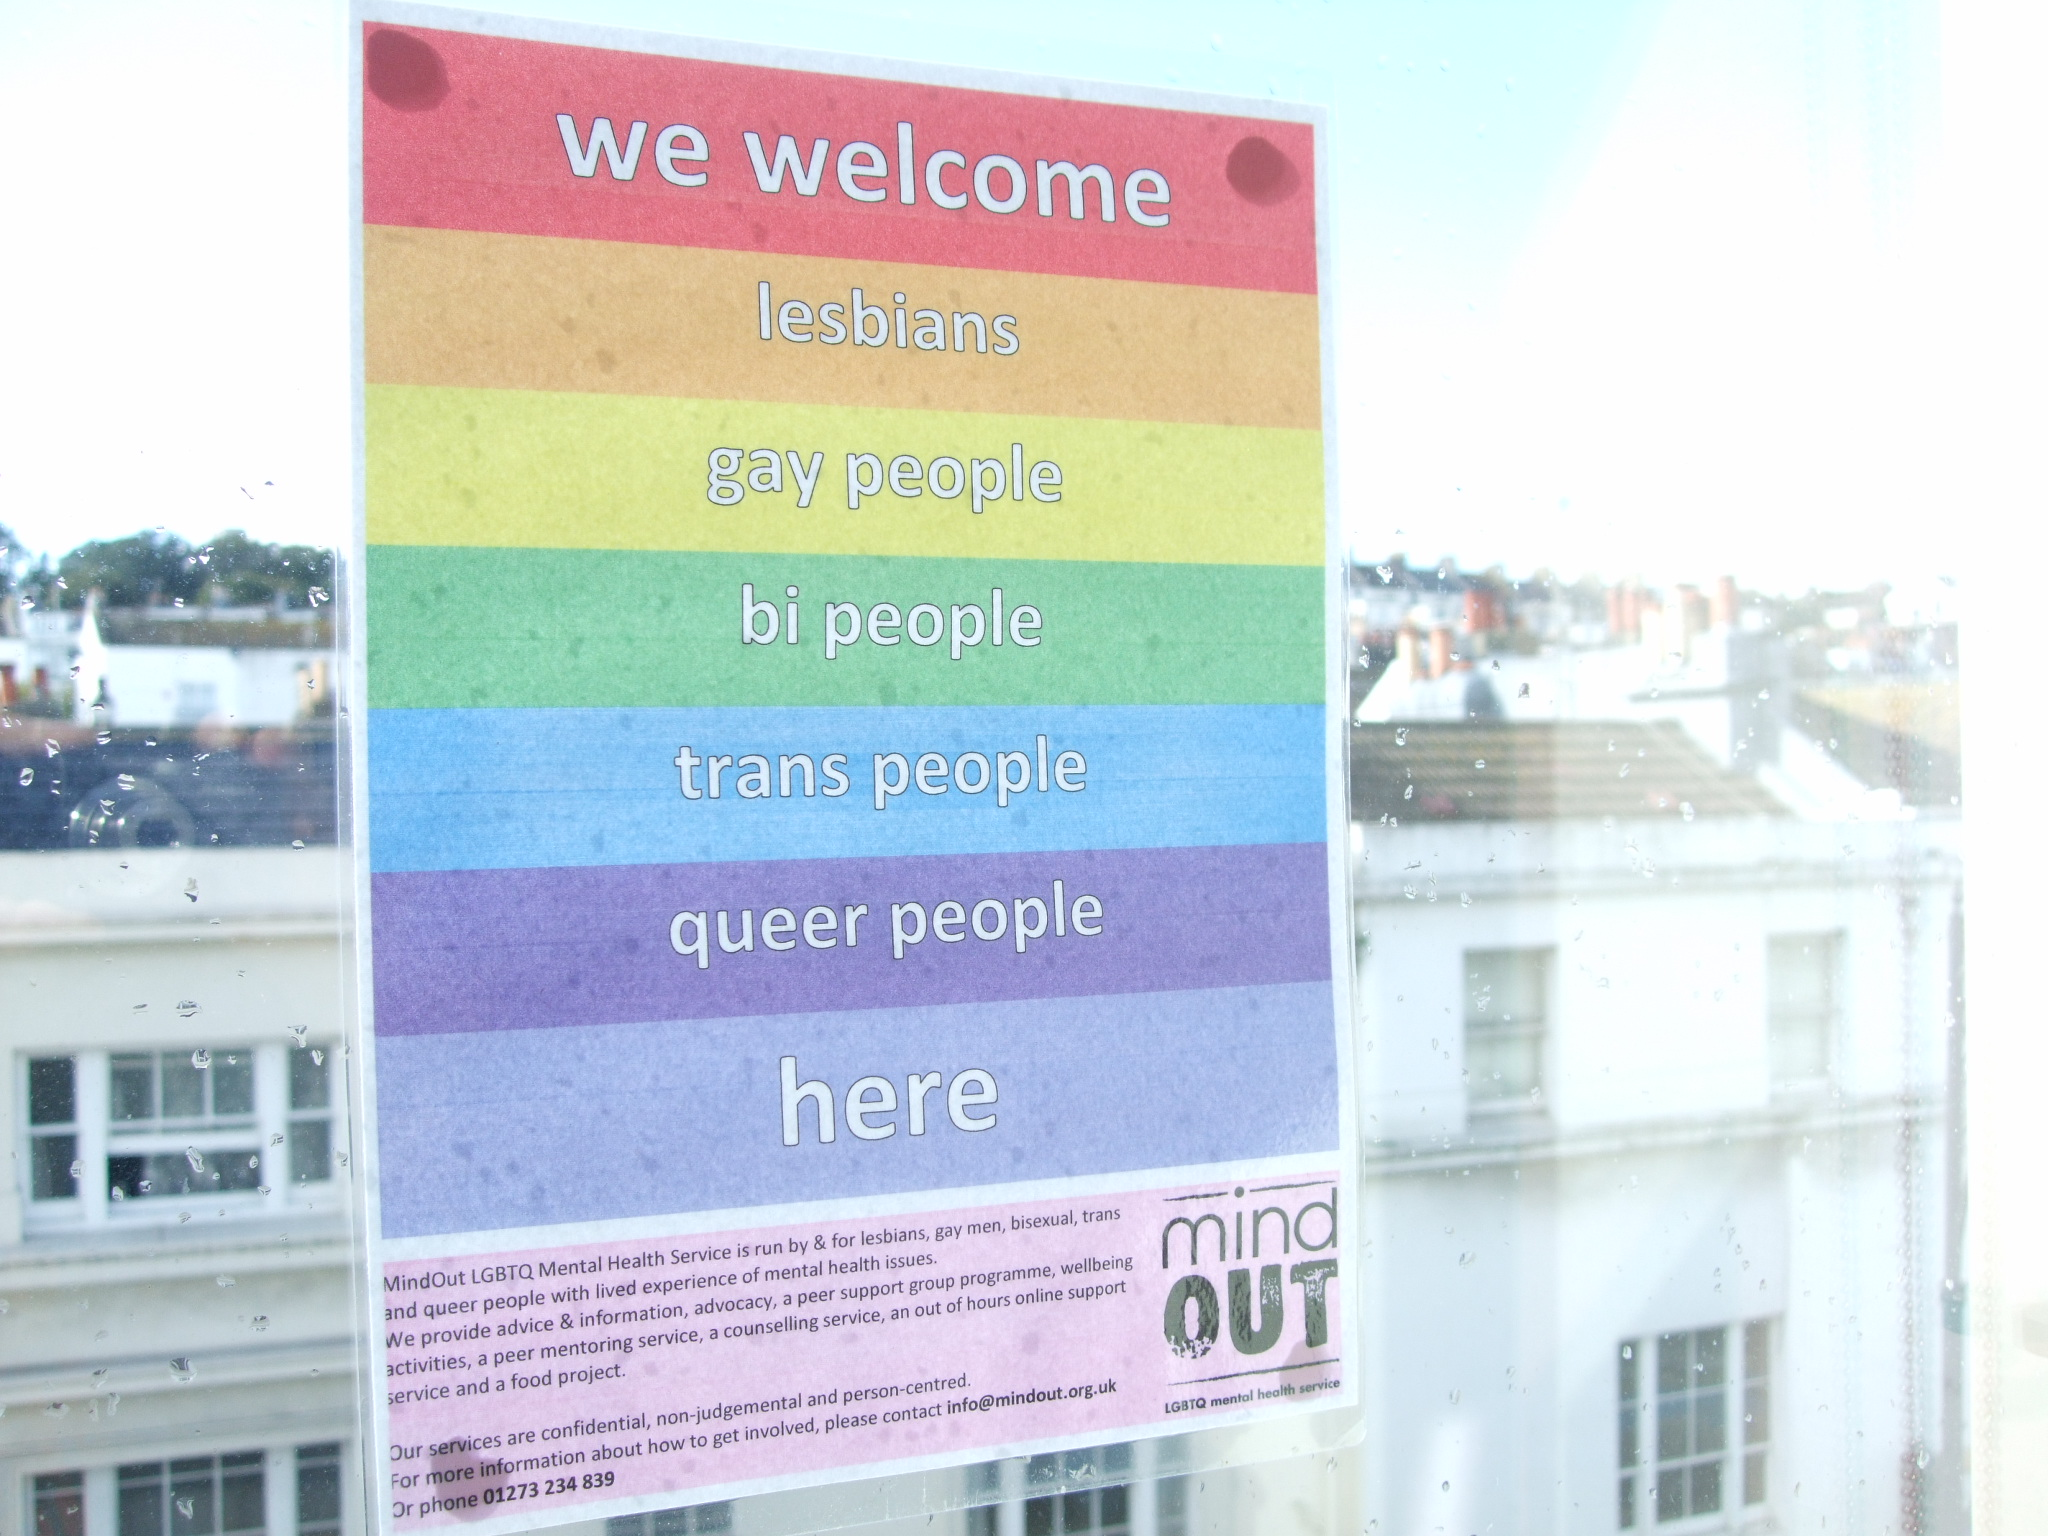 a poster welcoming LGBTQ people